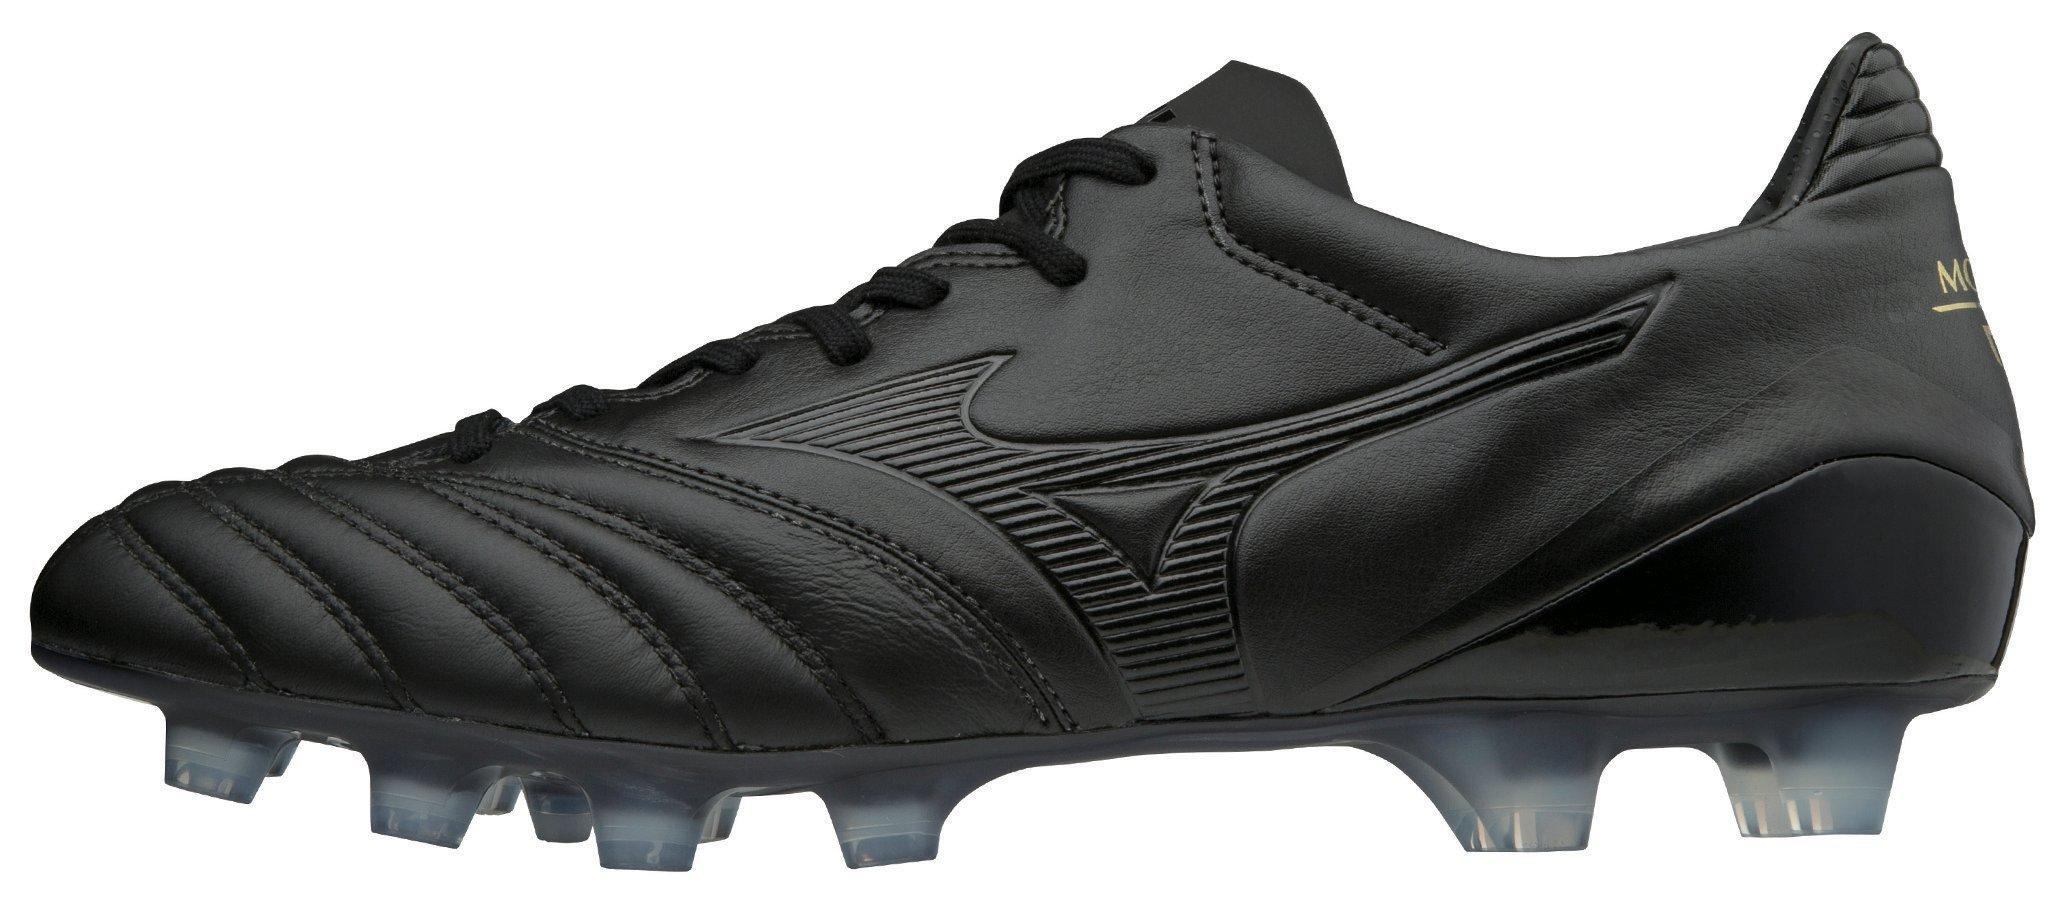 mizuno indoor soccer shoes usa estados unidos 90s